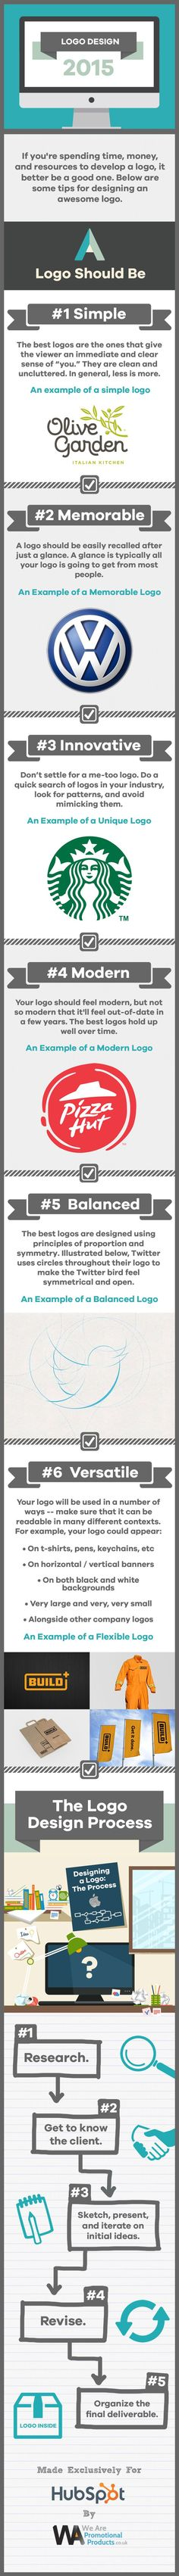 How to Create a Logo. A Simple Guide to Designing a Logo [Infographic]